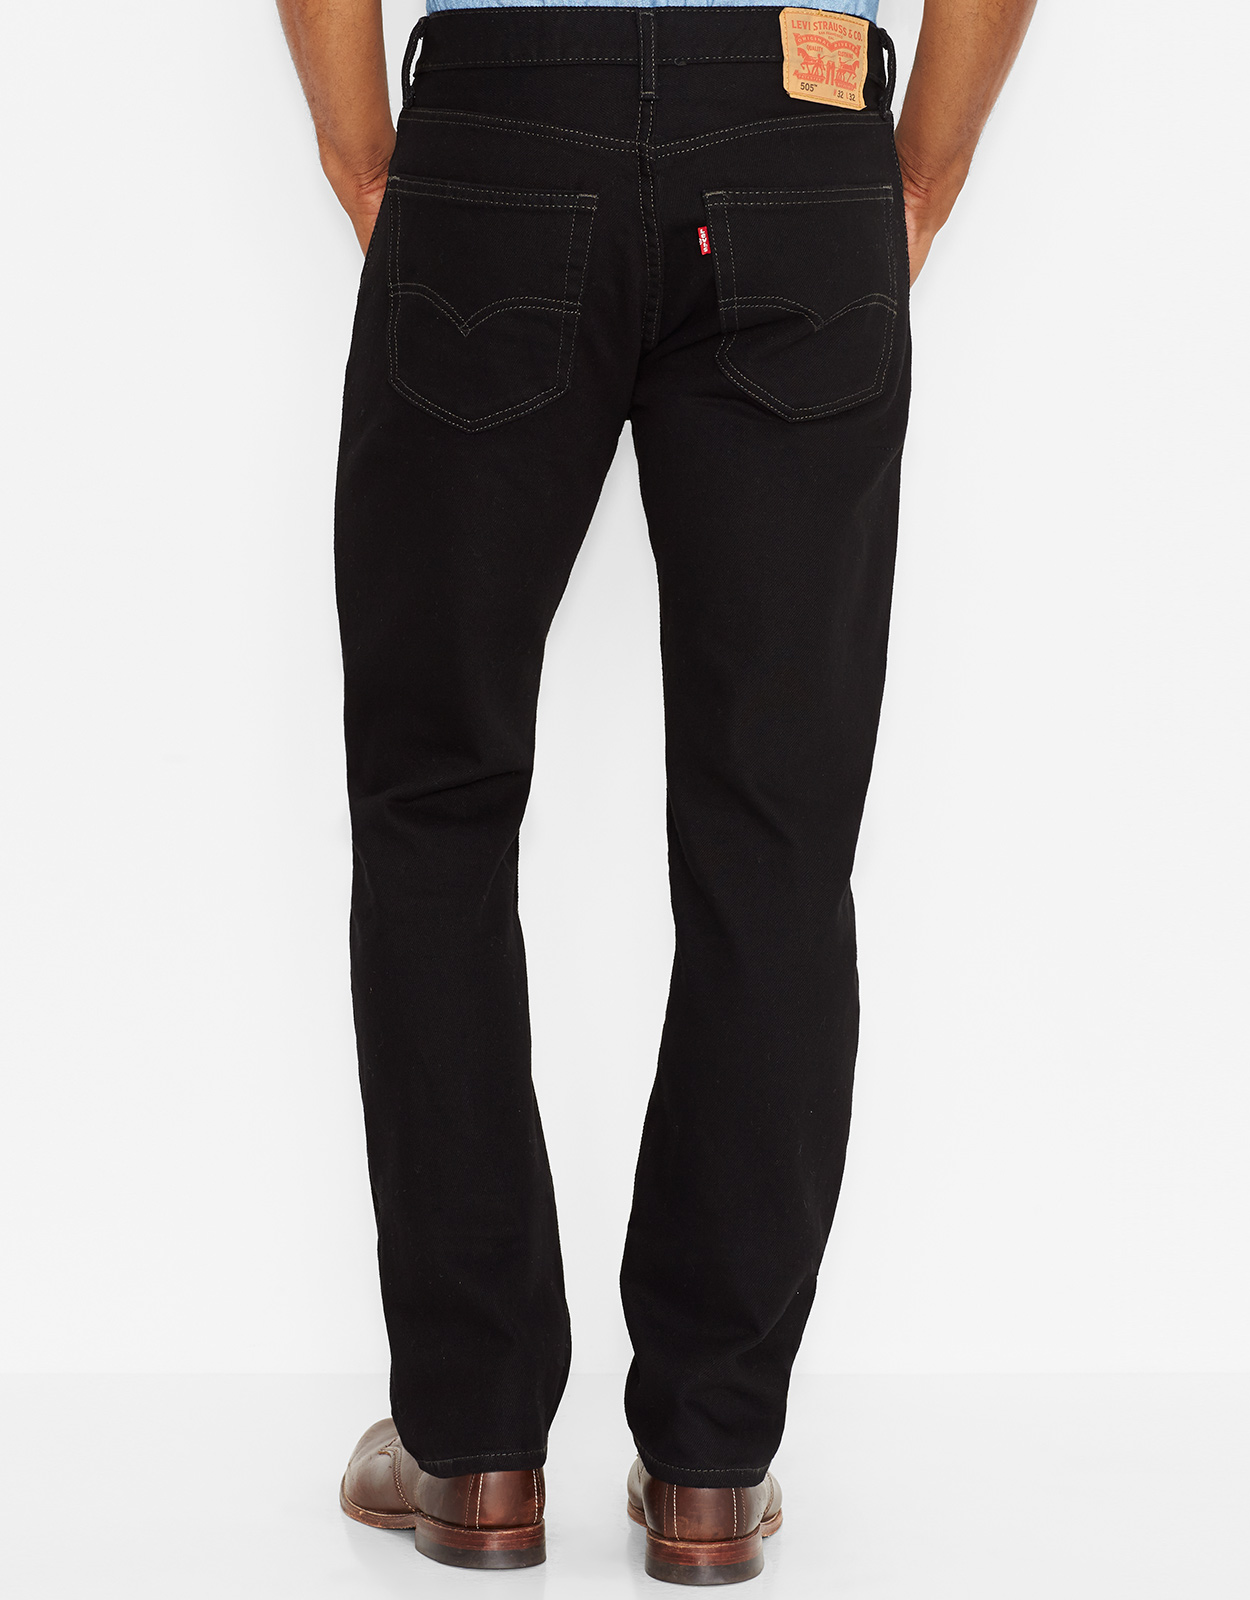 Jeans Levis Levi S Men S 505 Regular Fit Jeans Black